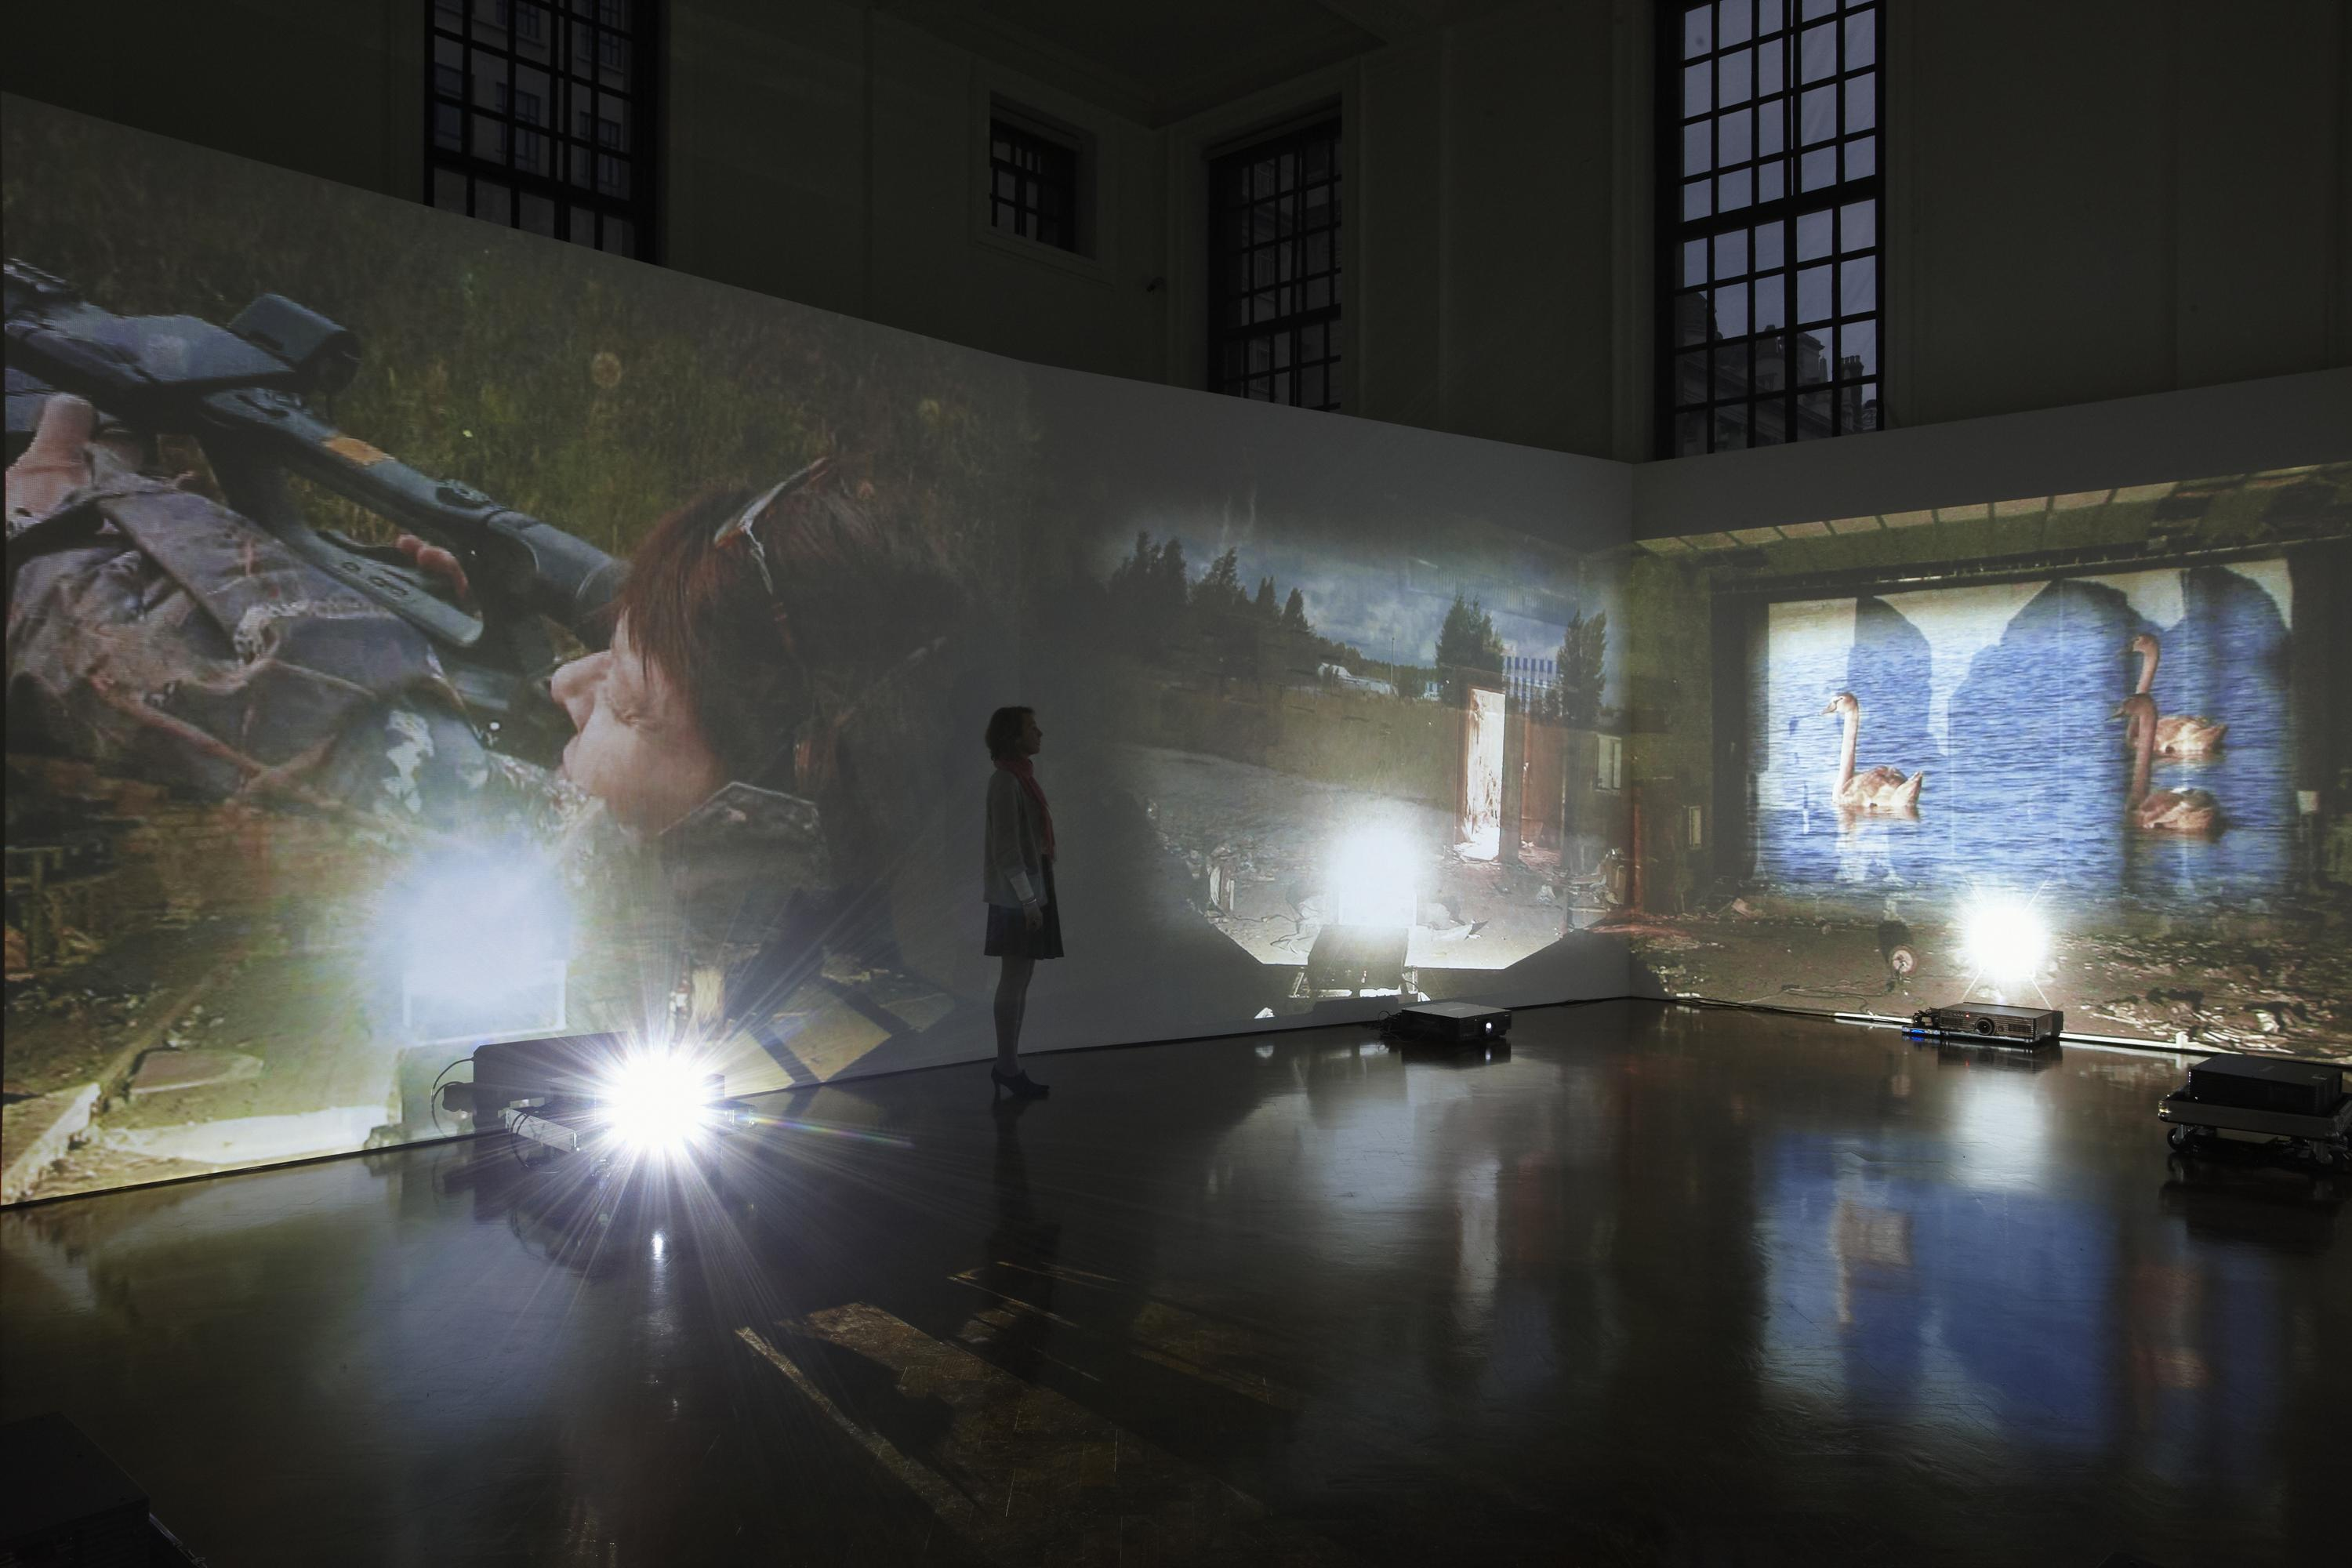 Installation view of a dark room with high ceilings that has three projectors on the floor projecting onto two gallery walls videos of birds swimming on the right and a female hunter aiming a gun on the left. A woman stands in the middle the installation watching the videos.